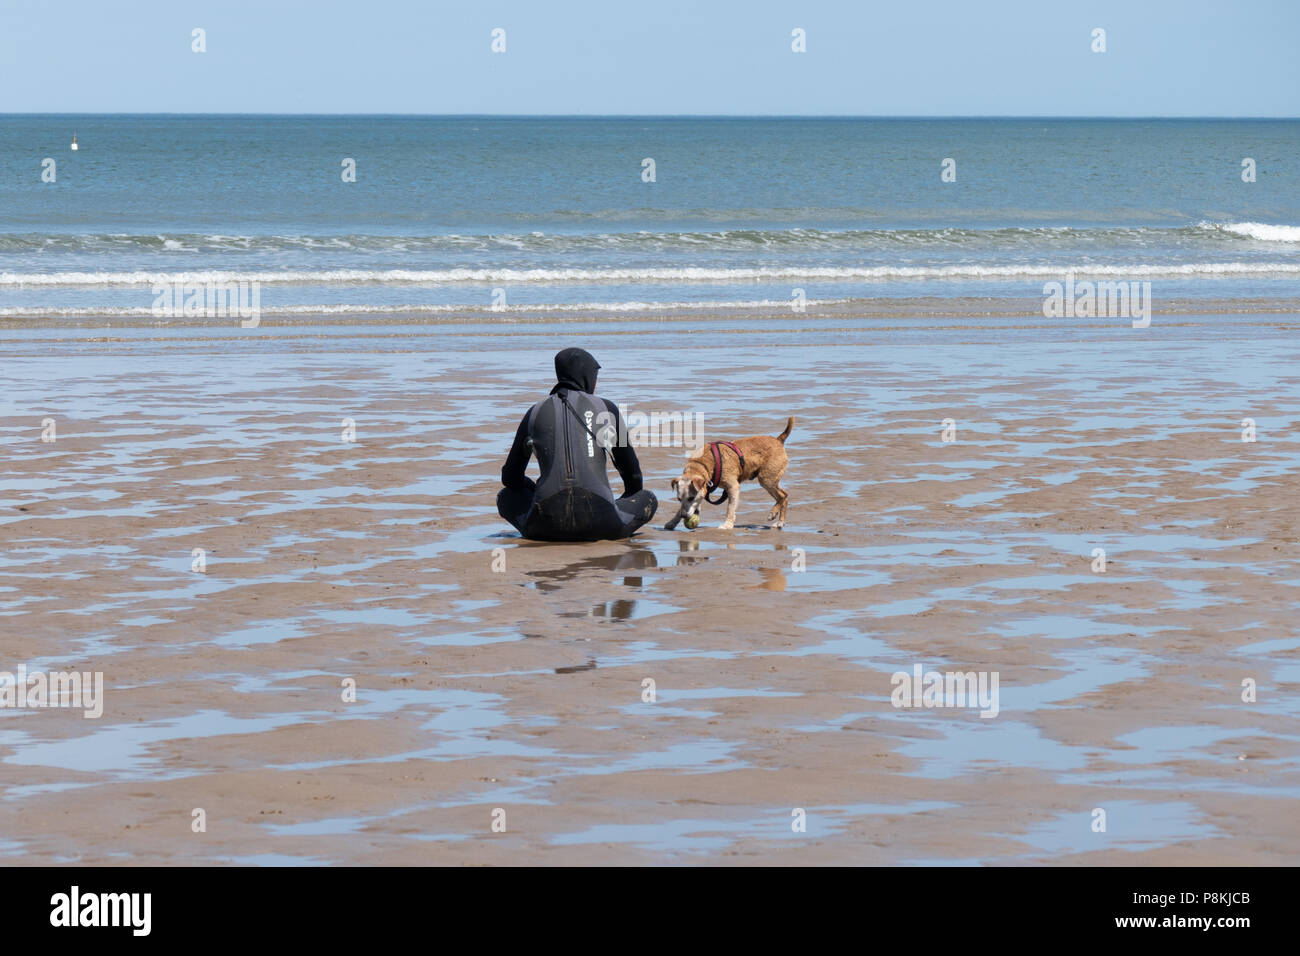 Dog walking and playing on the beaches of North Yorkshire - Stock Image